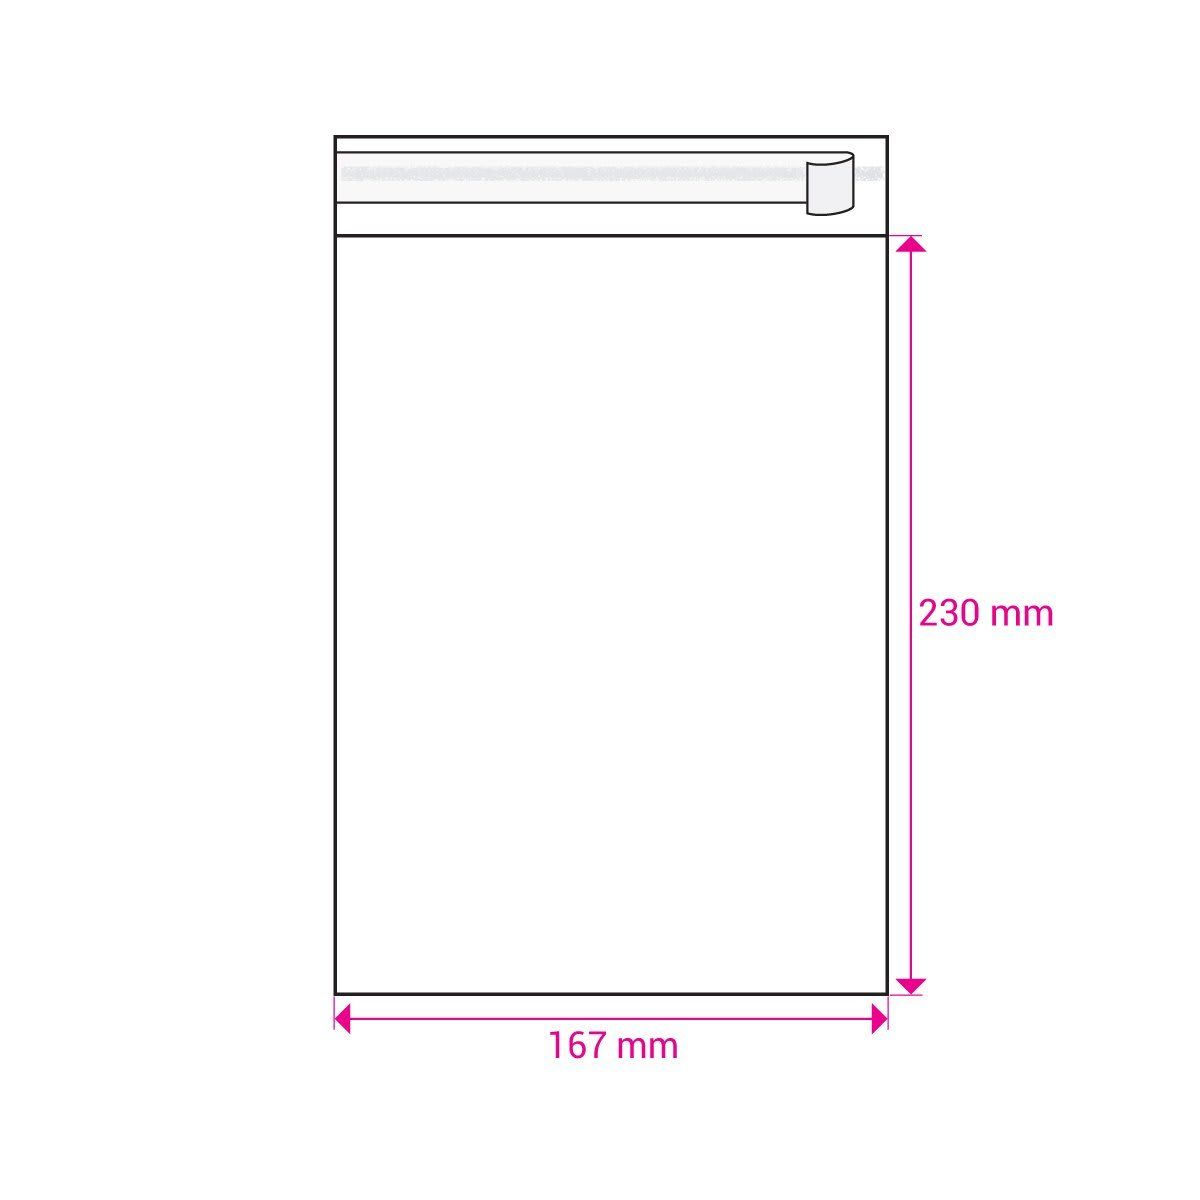 CLEAR CELLO BAGS to fit: C5 162 x 229 mm Envelope (SELF ADHESIVE)